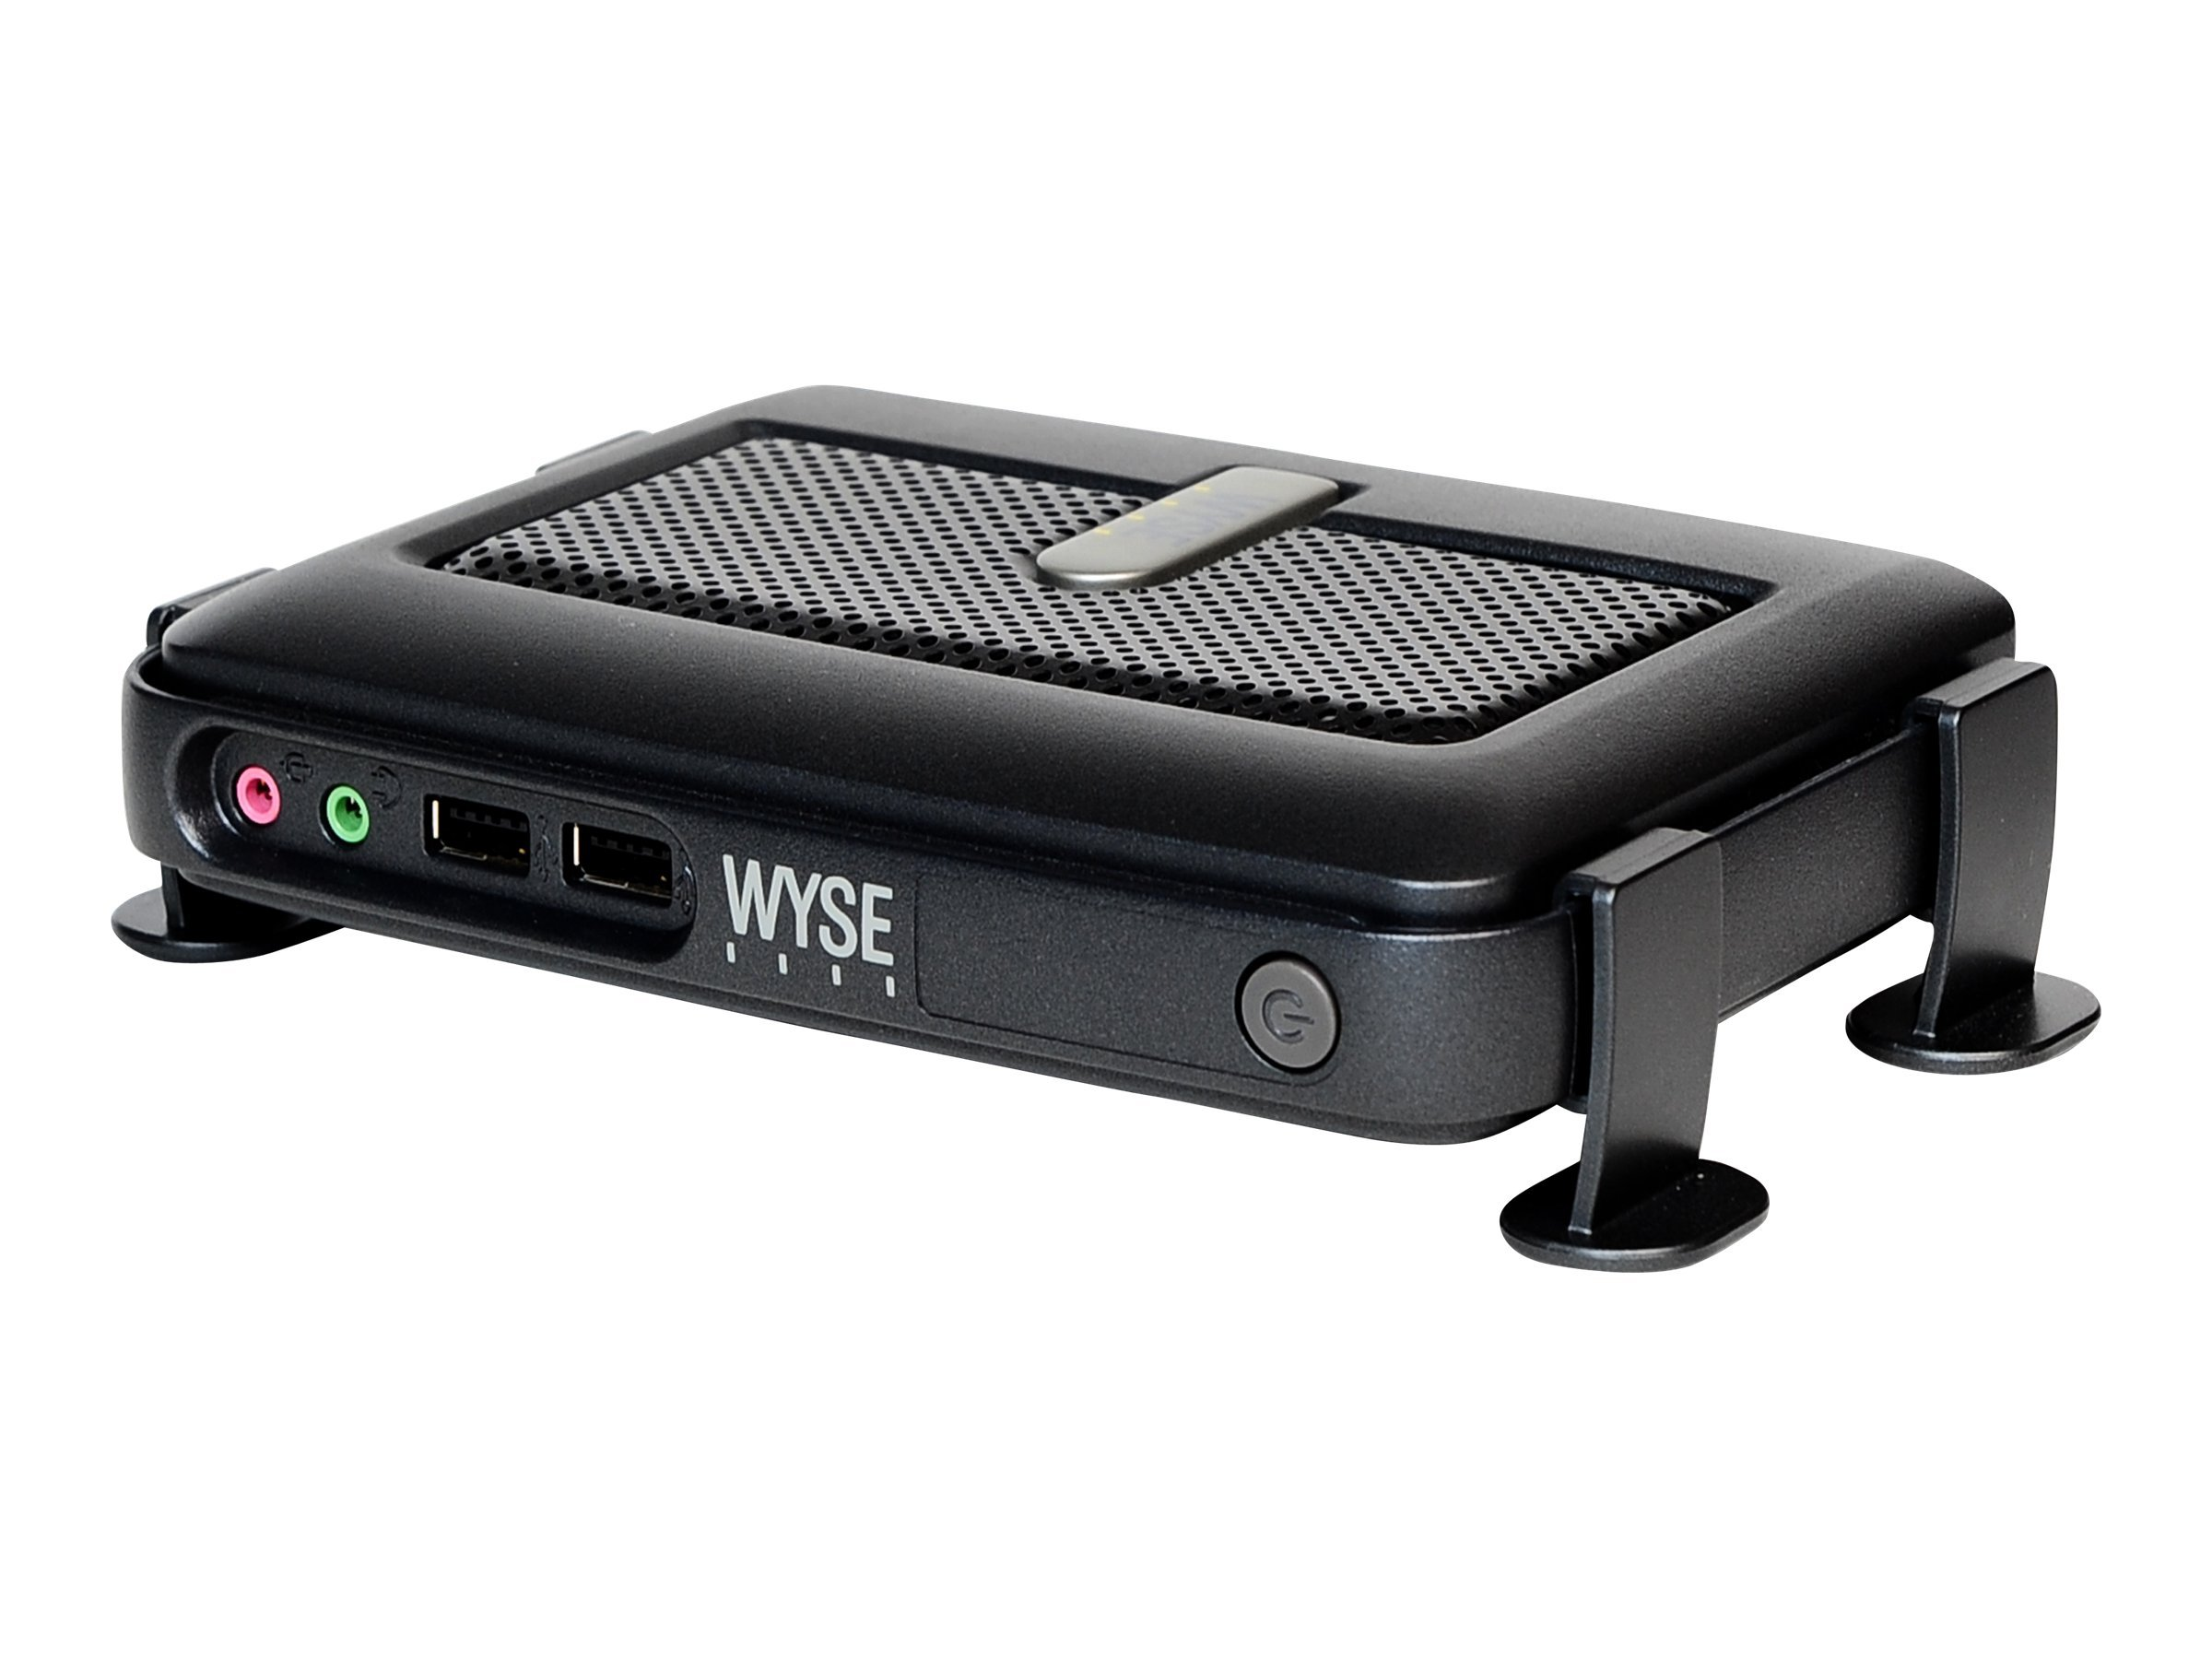 Dell Wyse C10LE Thin Client - Thin Client - DTS - 1 x C7 1 GHz ULV - RAM 512 MB - Flash 128 MB